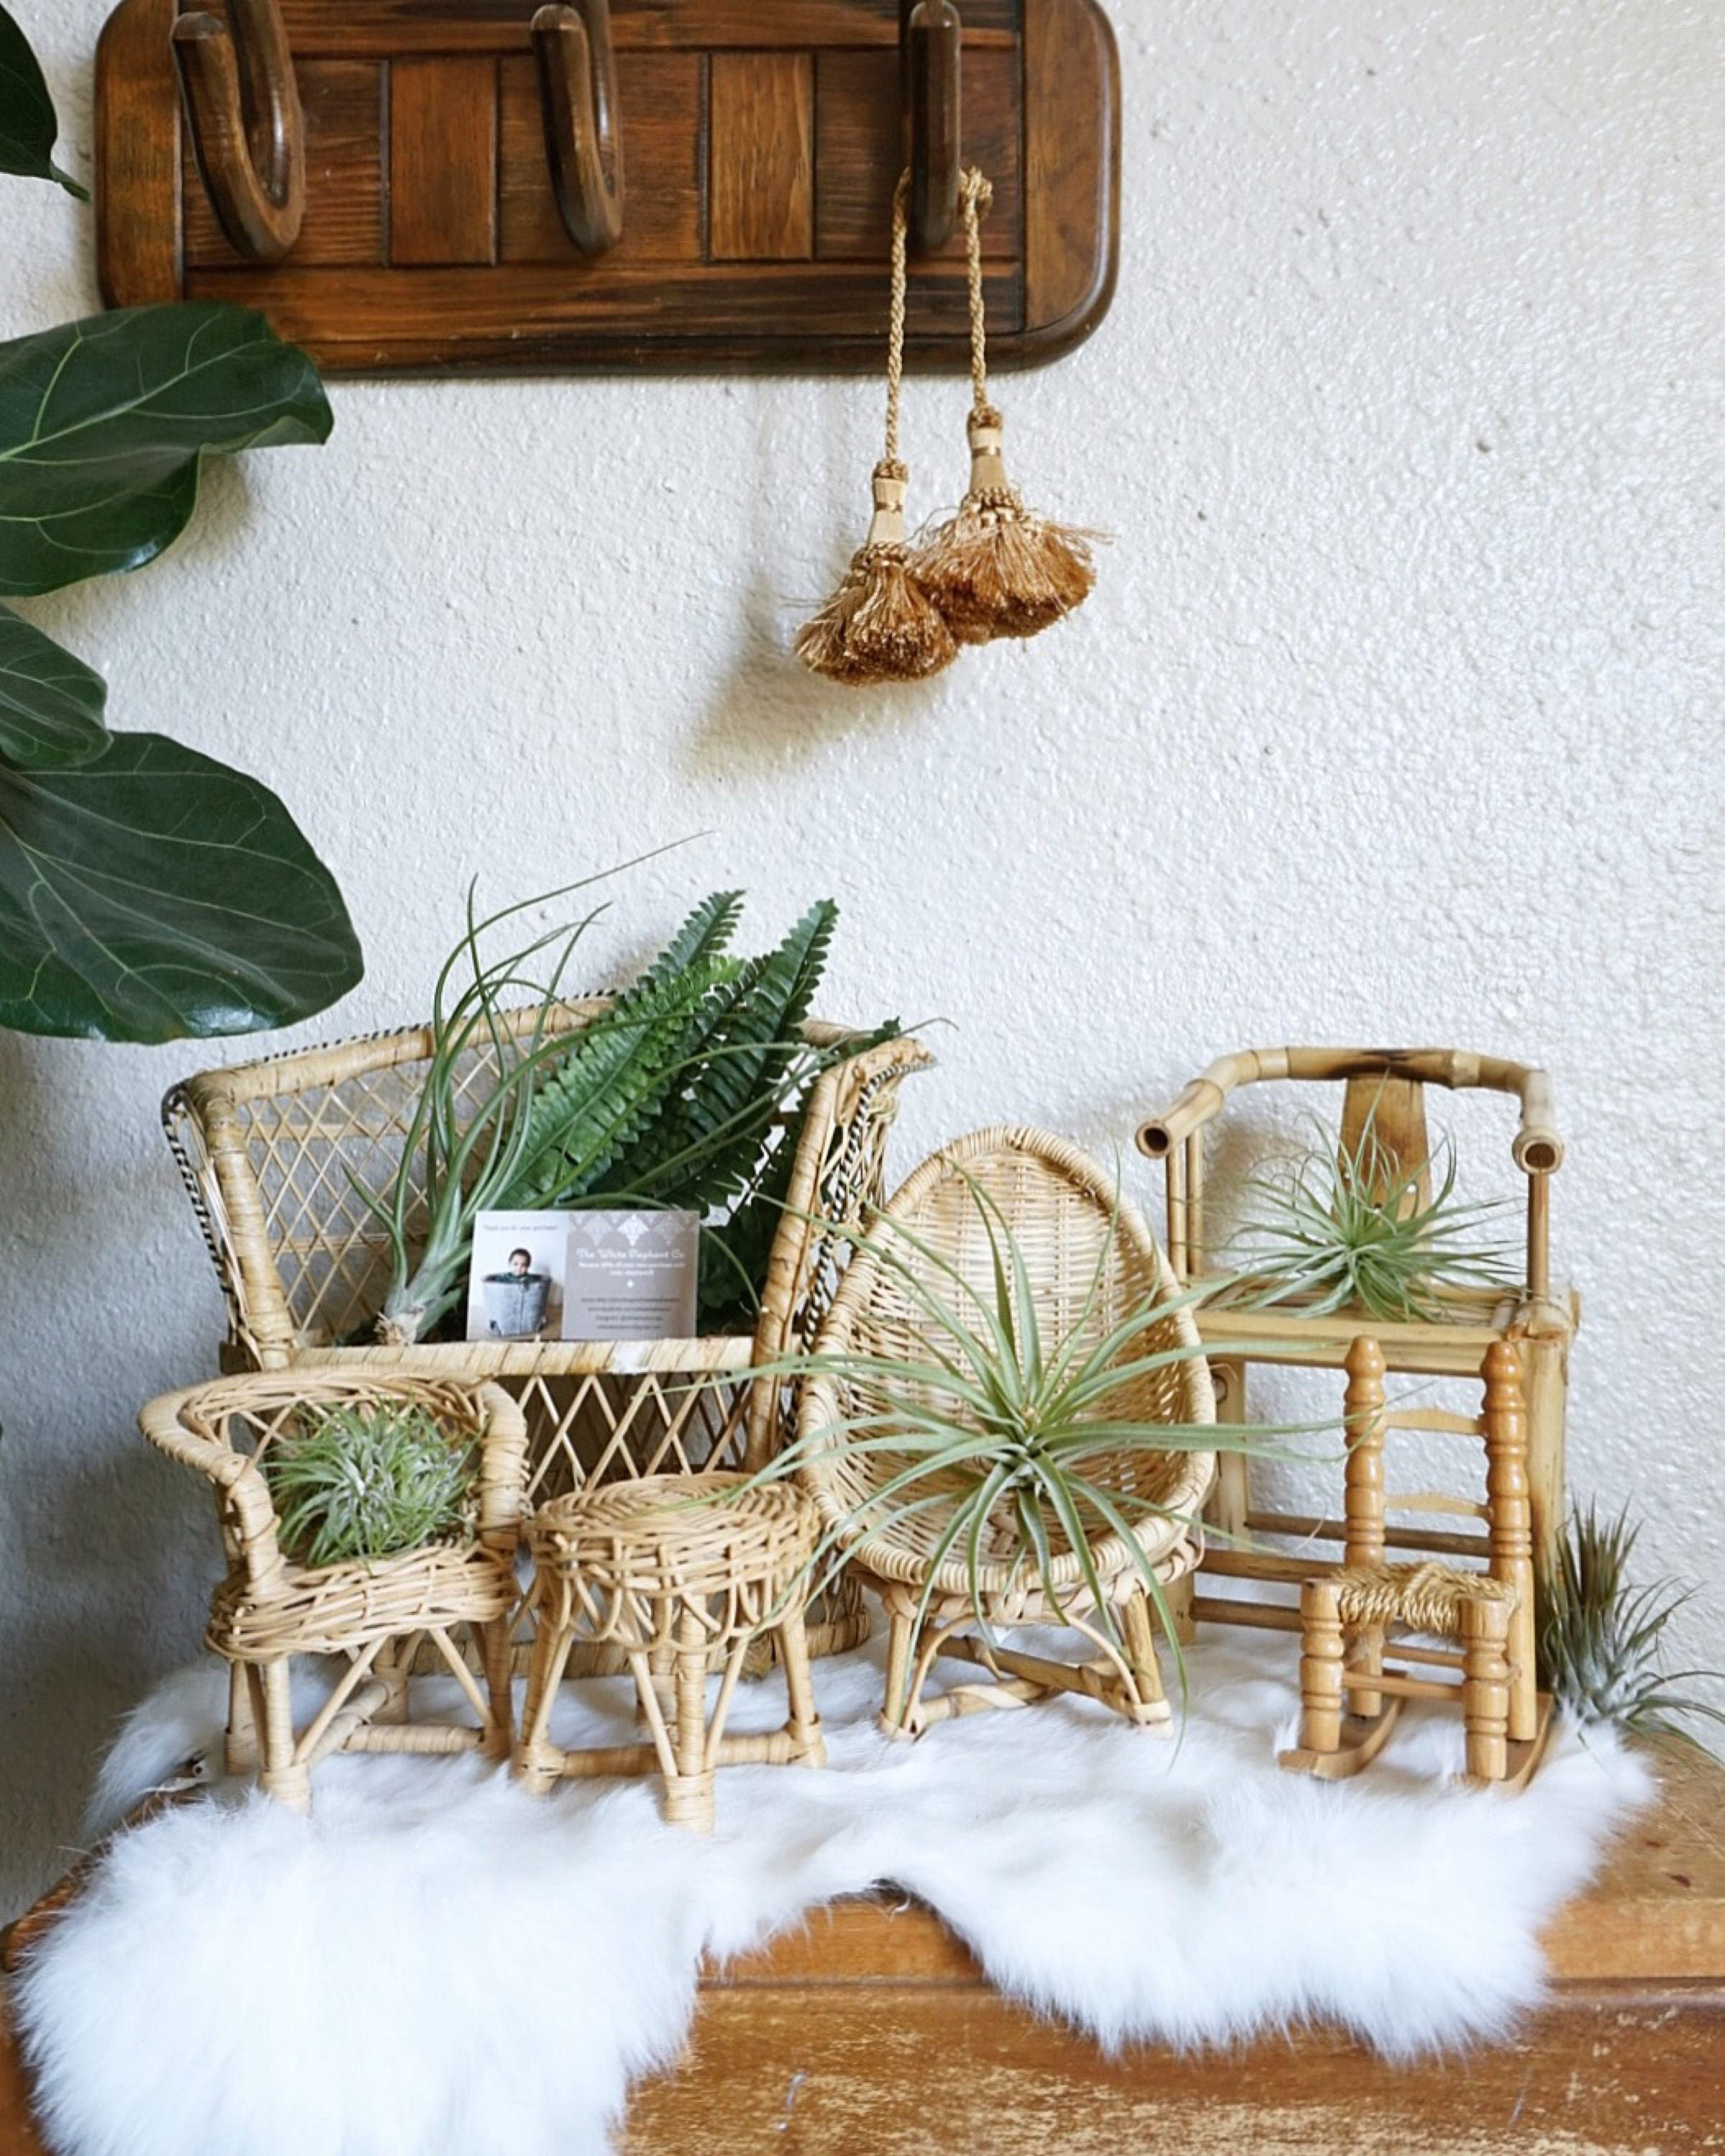 Vintage Miniature Furniture Thatched Rocking Chair Wicker